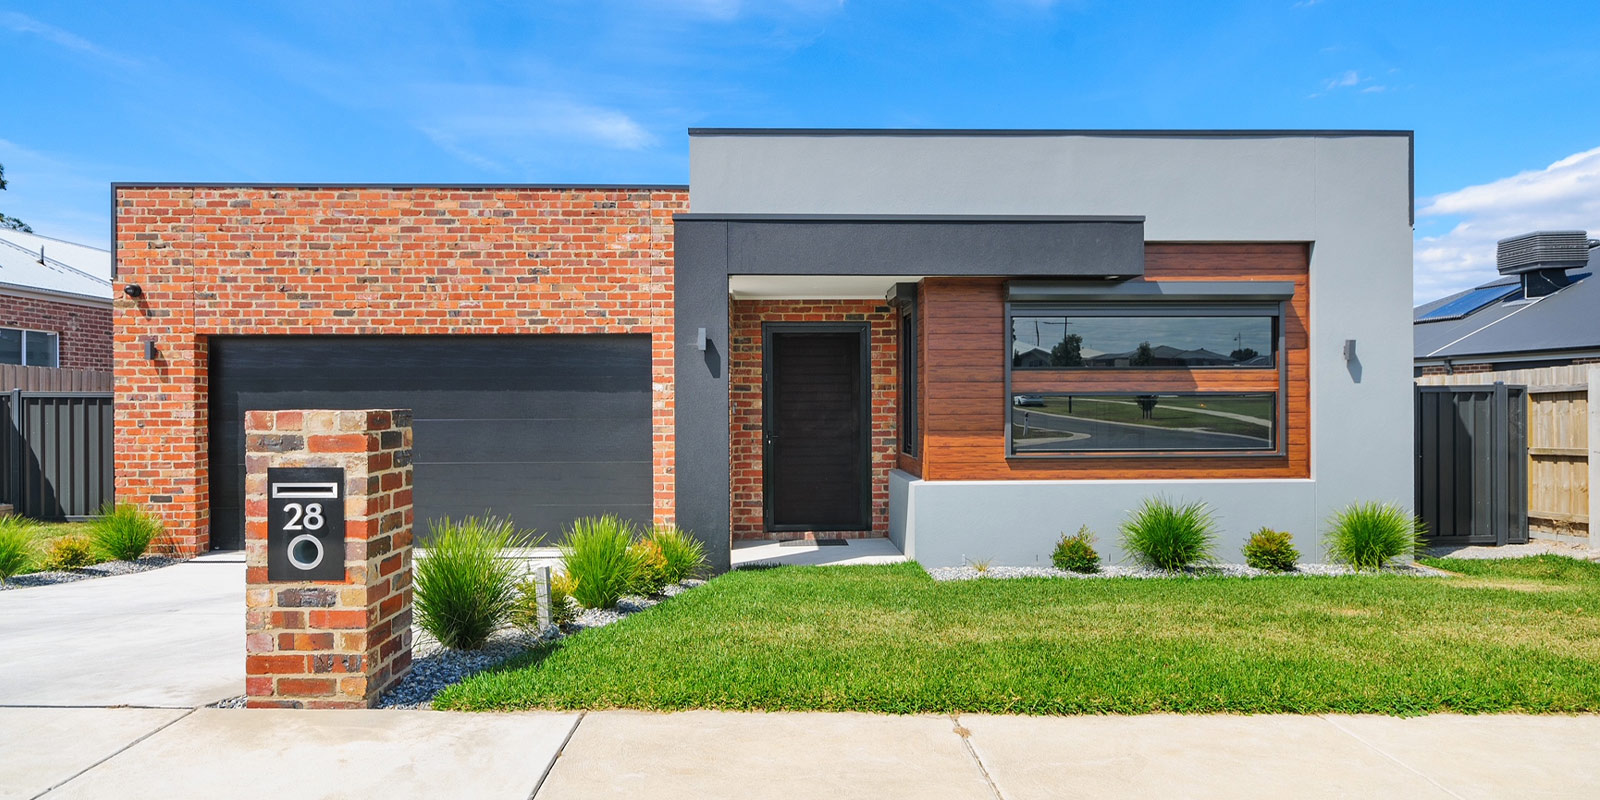 Custom Home by Virtue Homes with vintage red bricks and black contrast facade